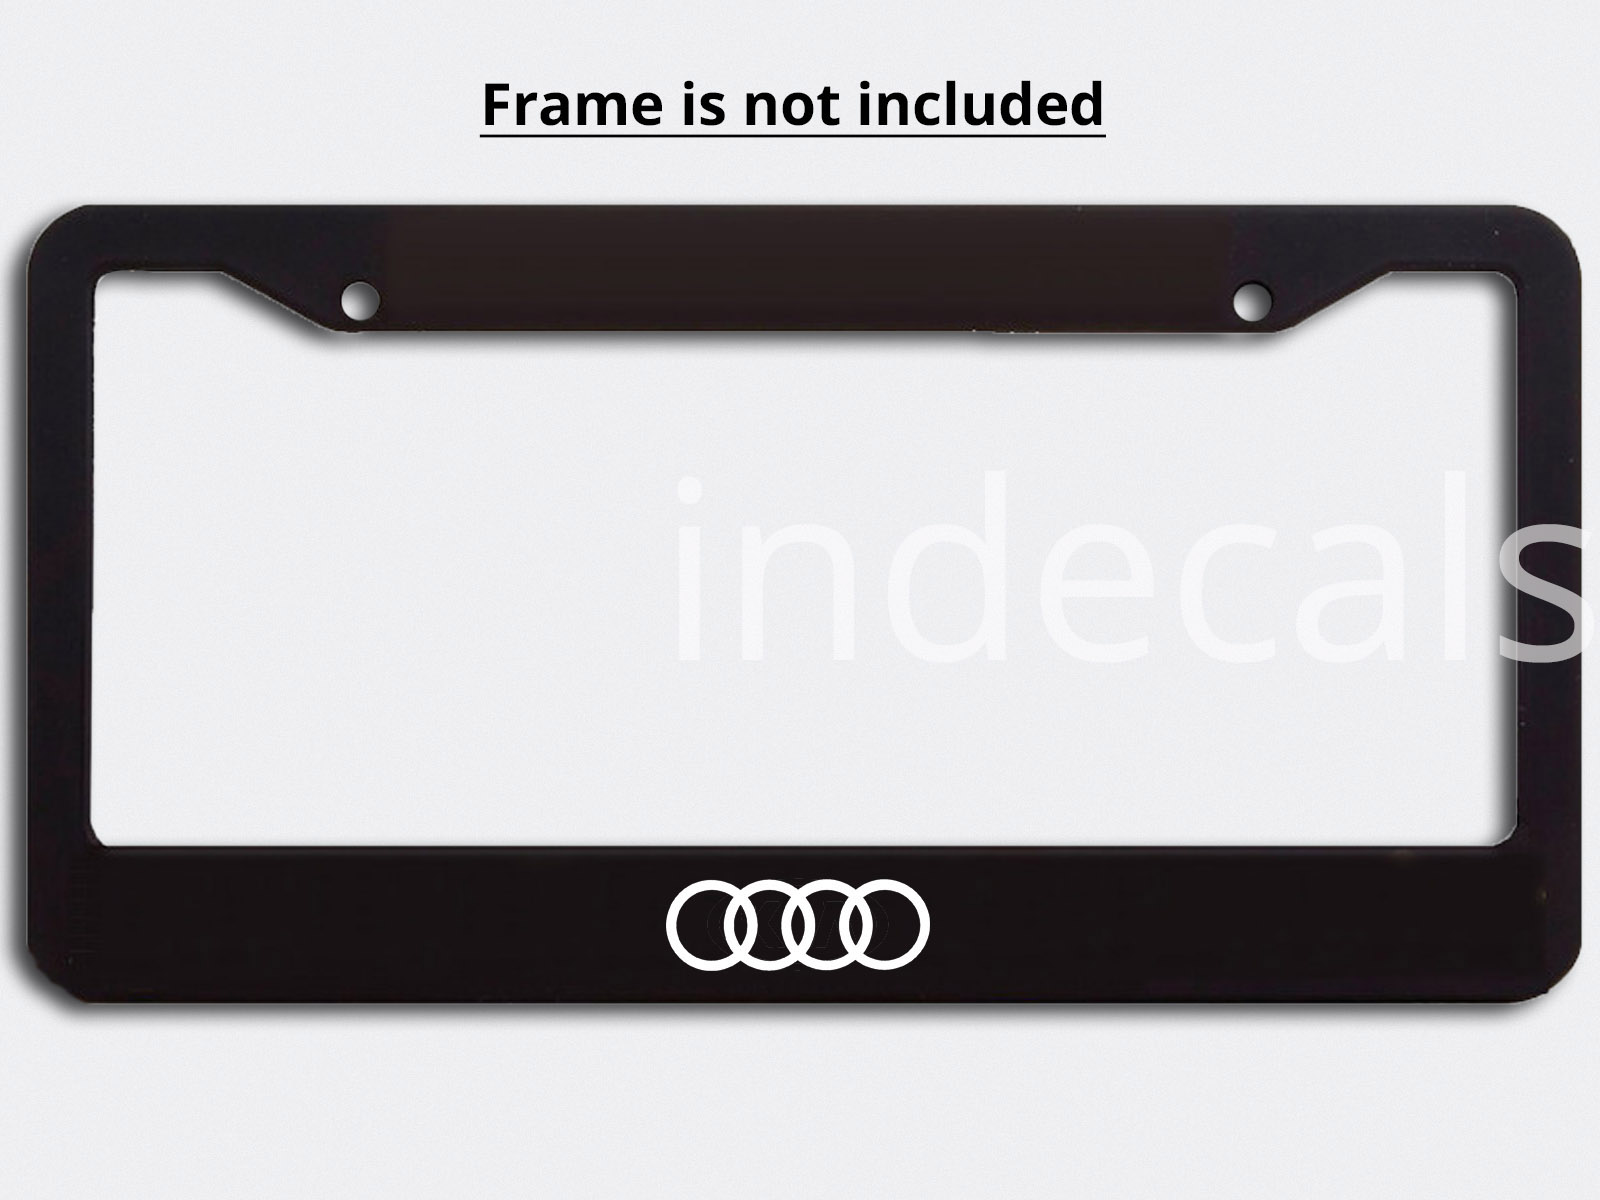 3 x Audi Rings Stickers for License Plate Frame - White